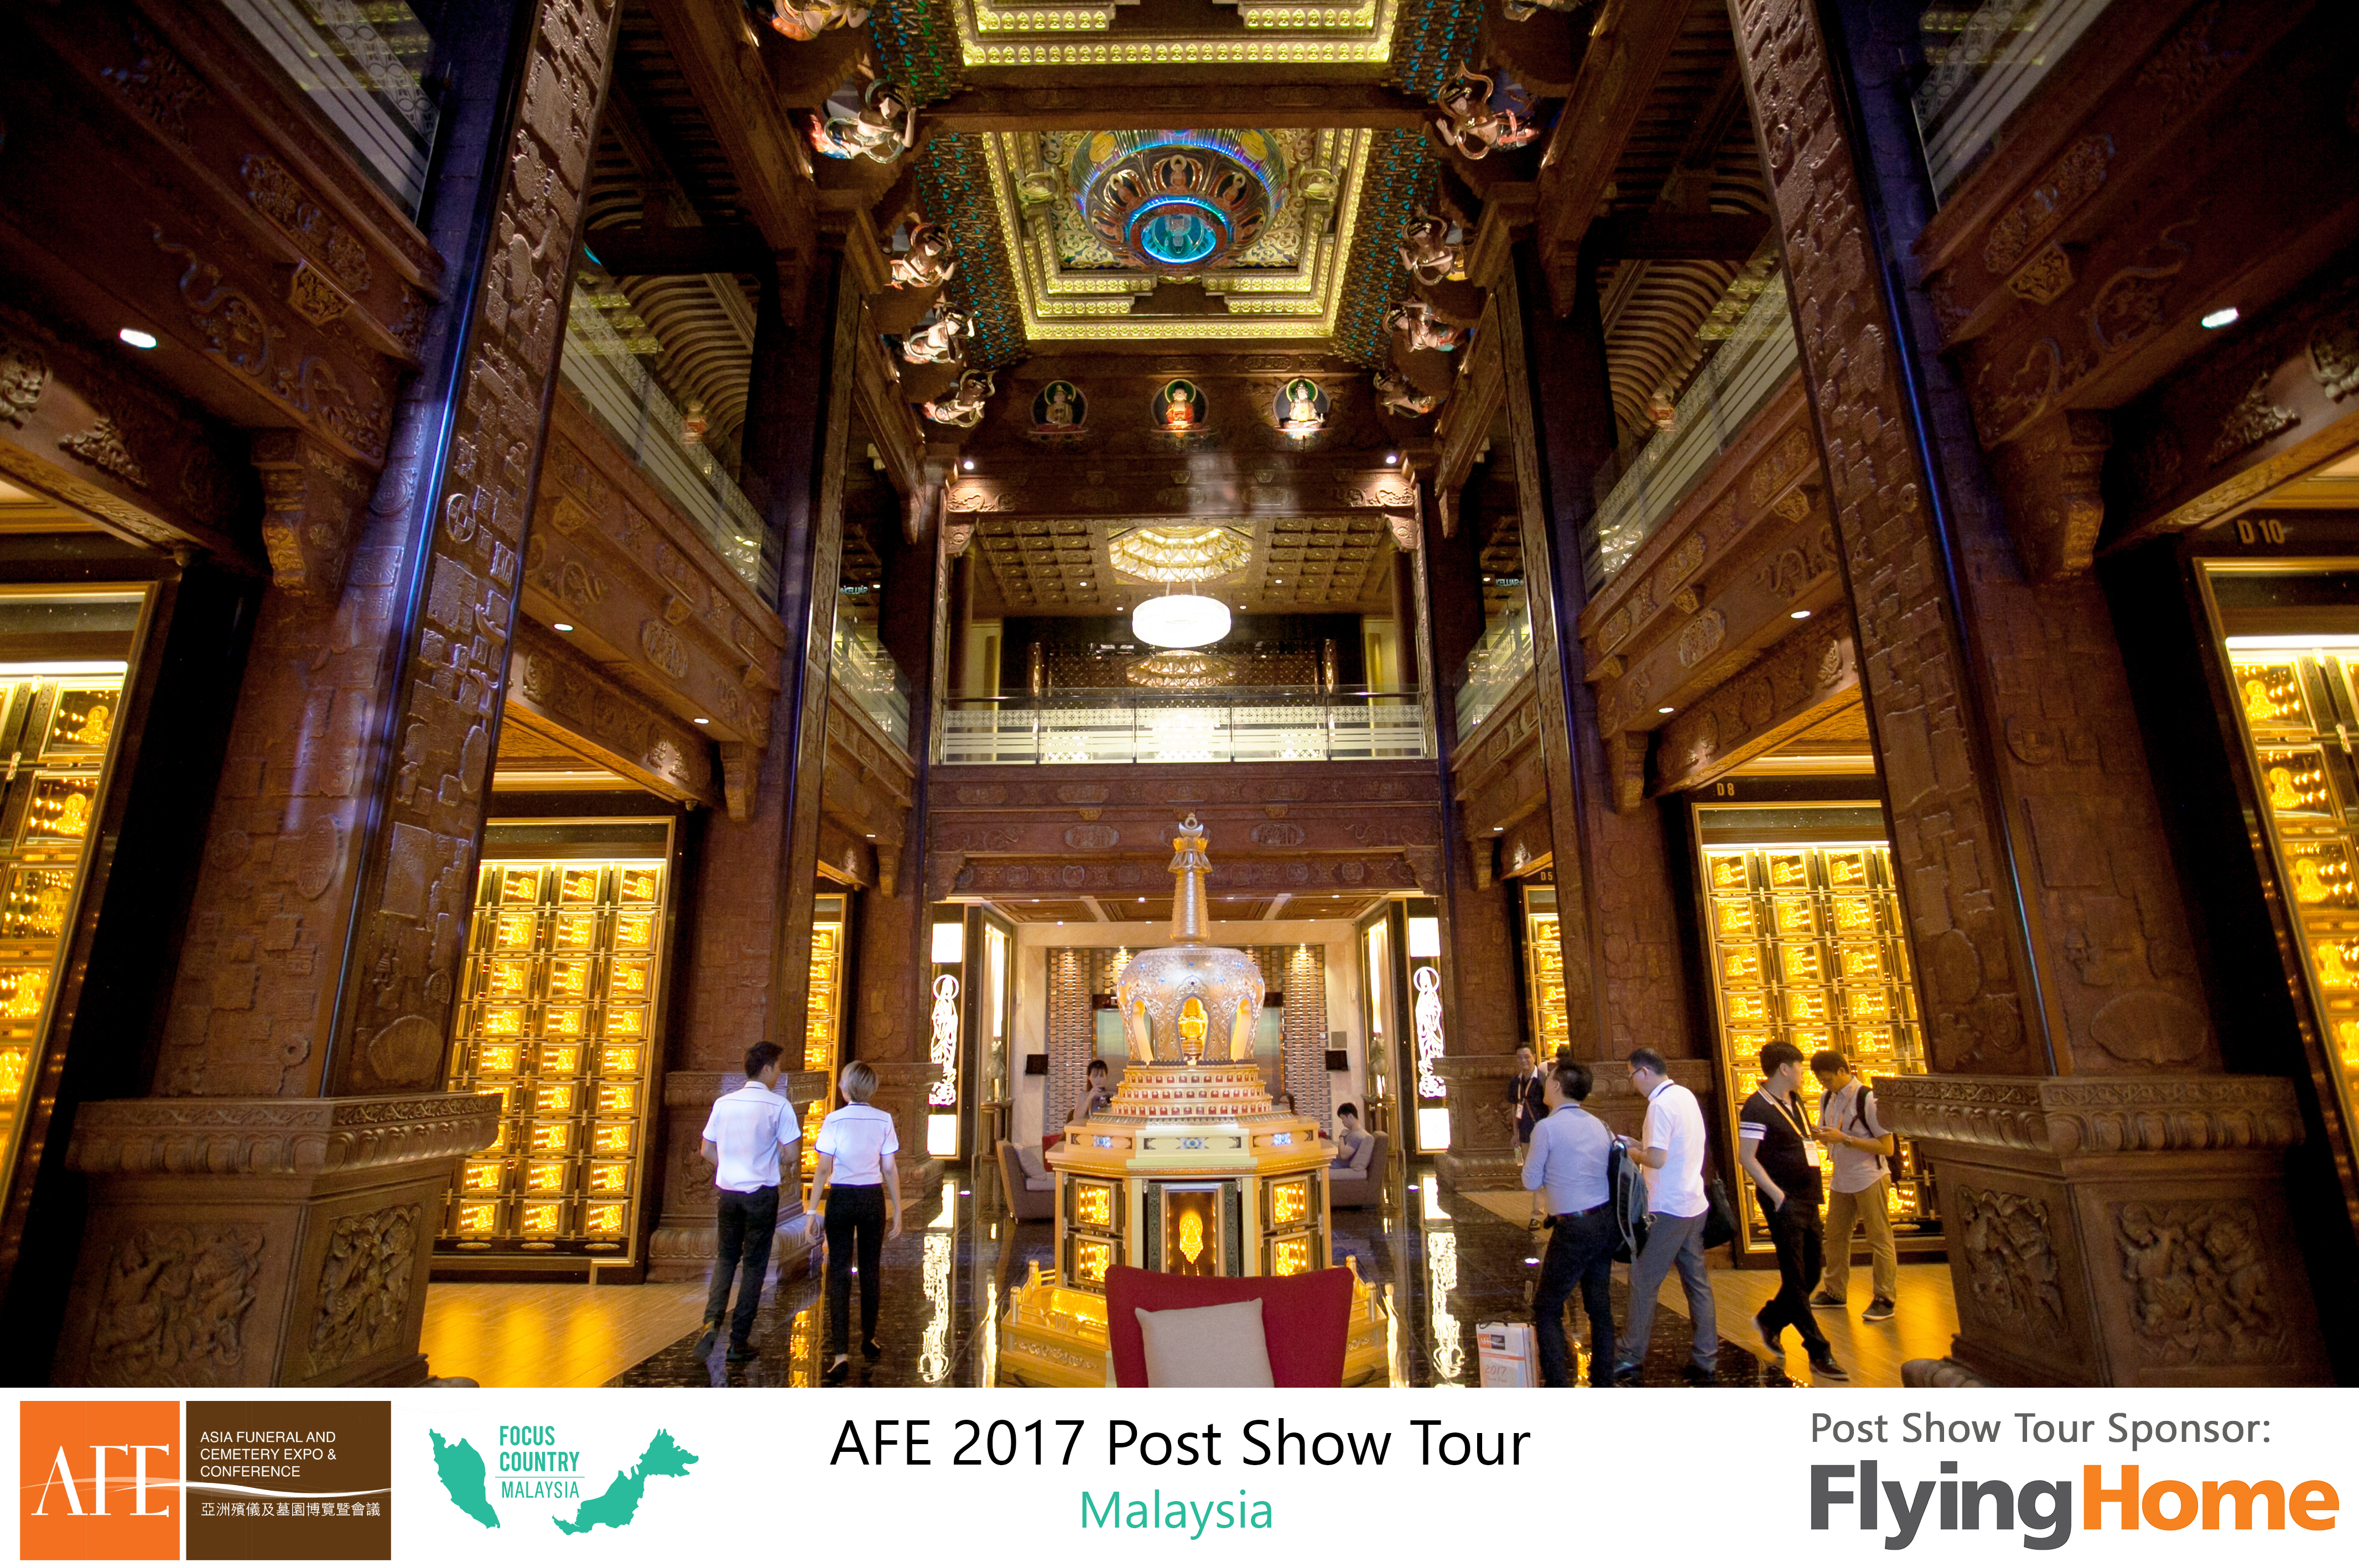 AFE Post Show Tour 2017 Day 2 - 78